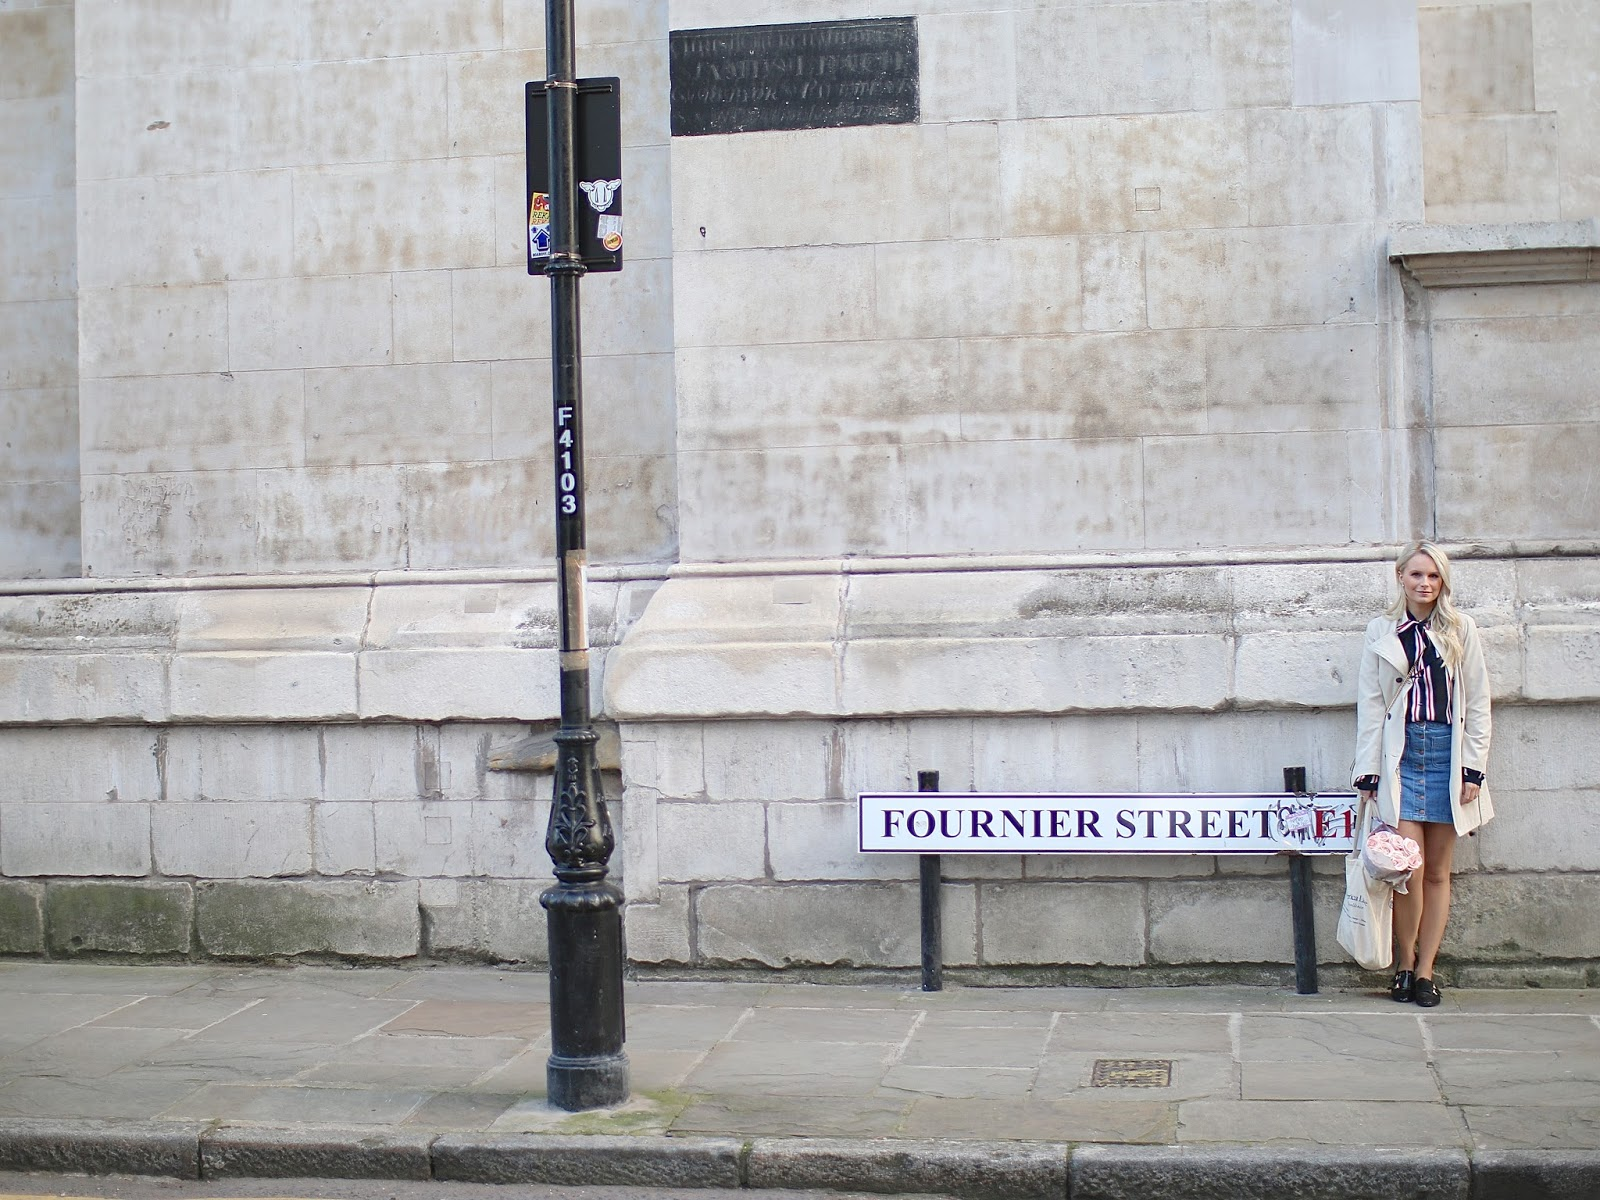 a women stands in front of pretty street sign in london, wearing a light blue denim skirt with buttons from Zara